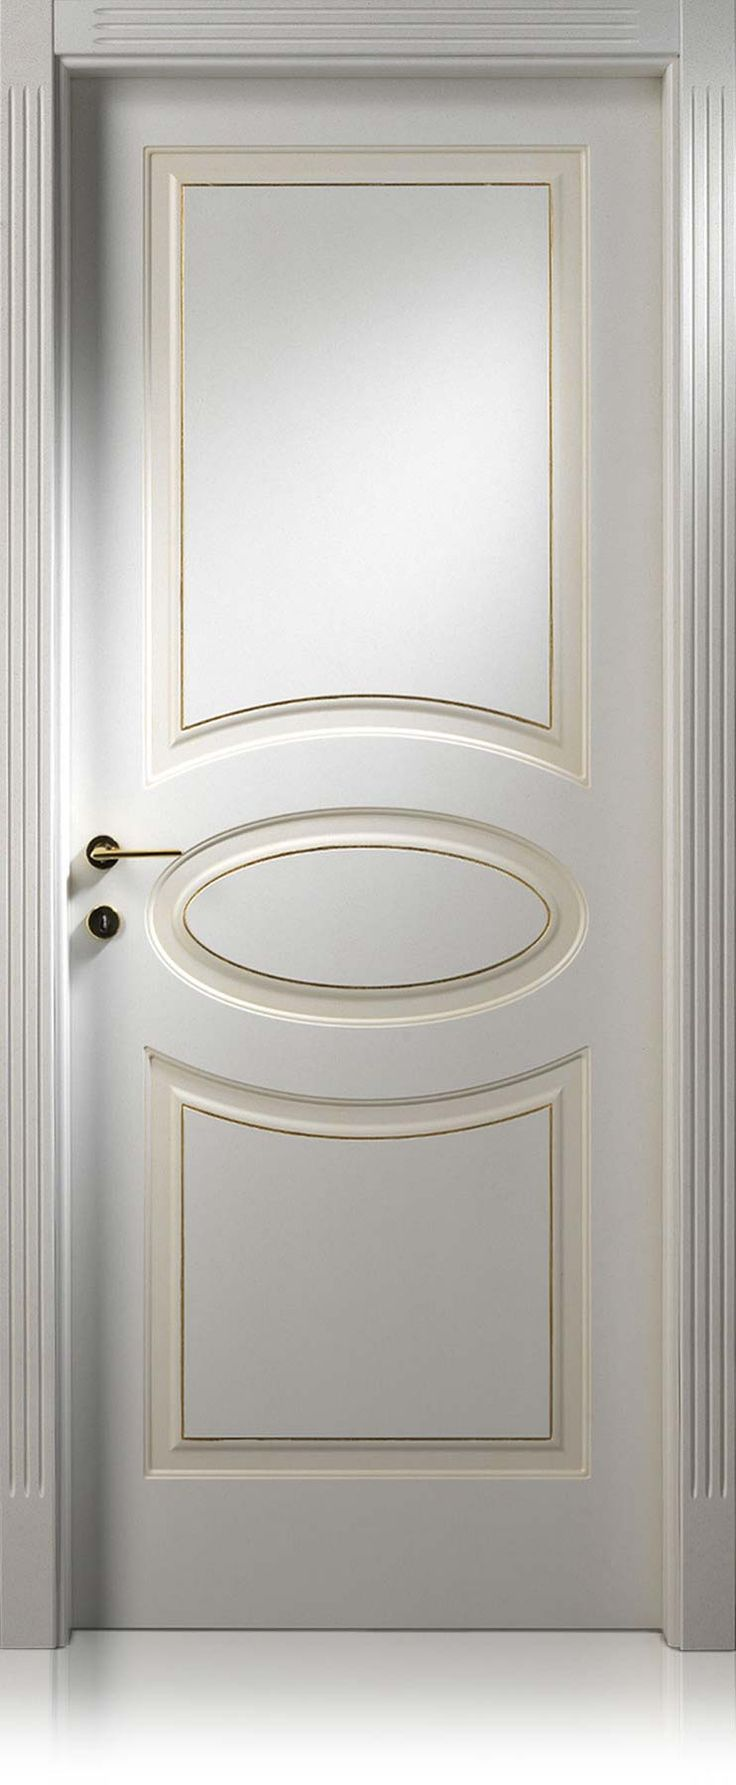 1000 Ideas About Interior Door Trim On Pinterest Door Trims Interior Doors And Baseboard Molding